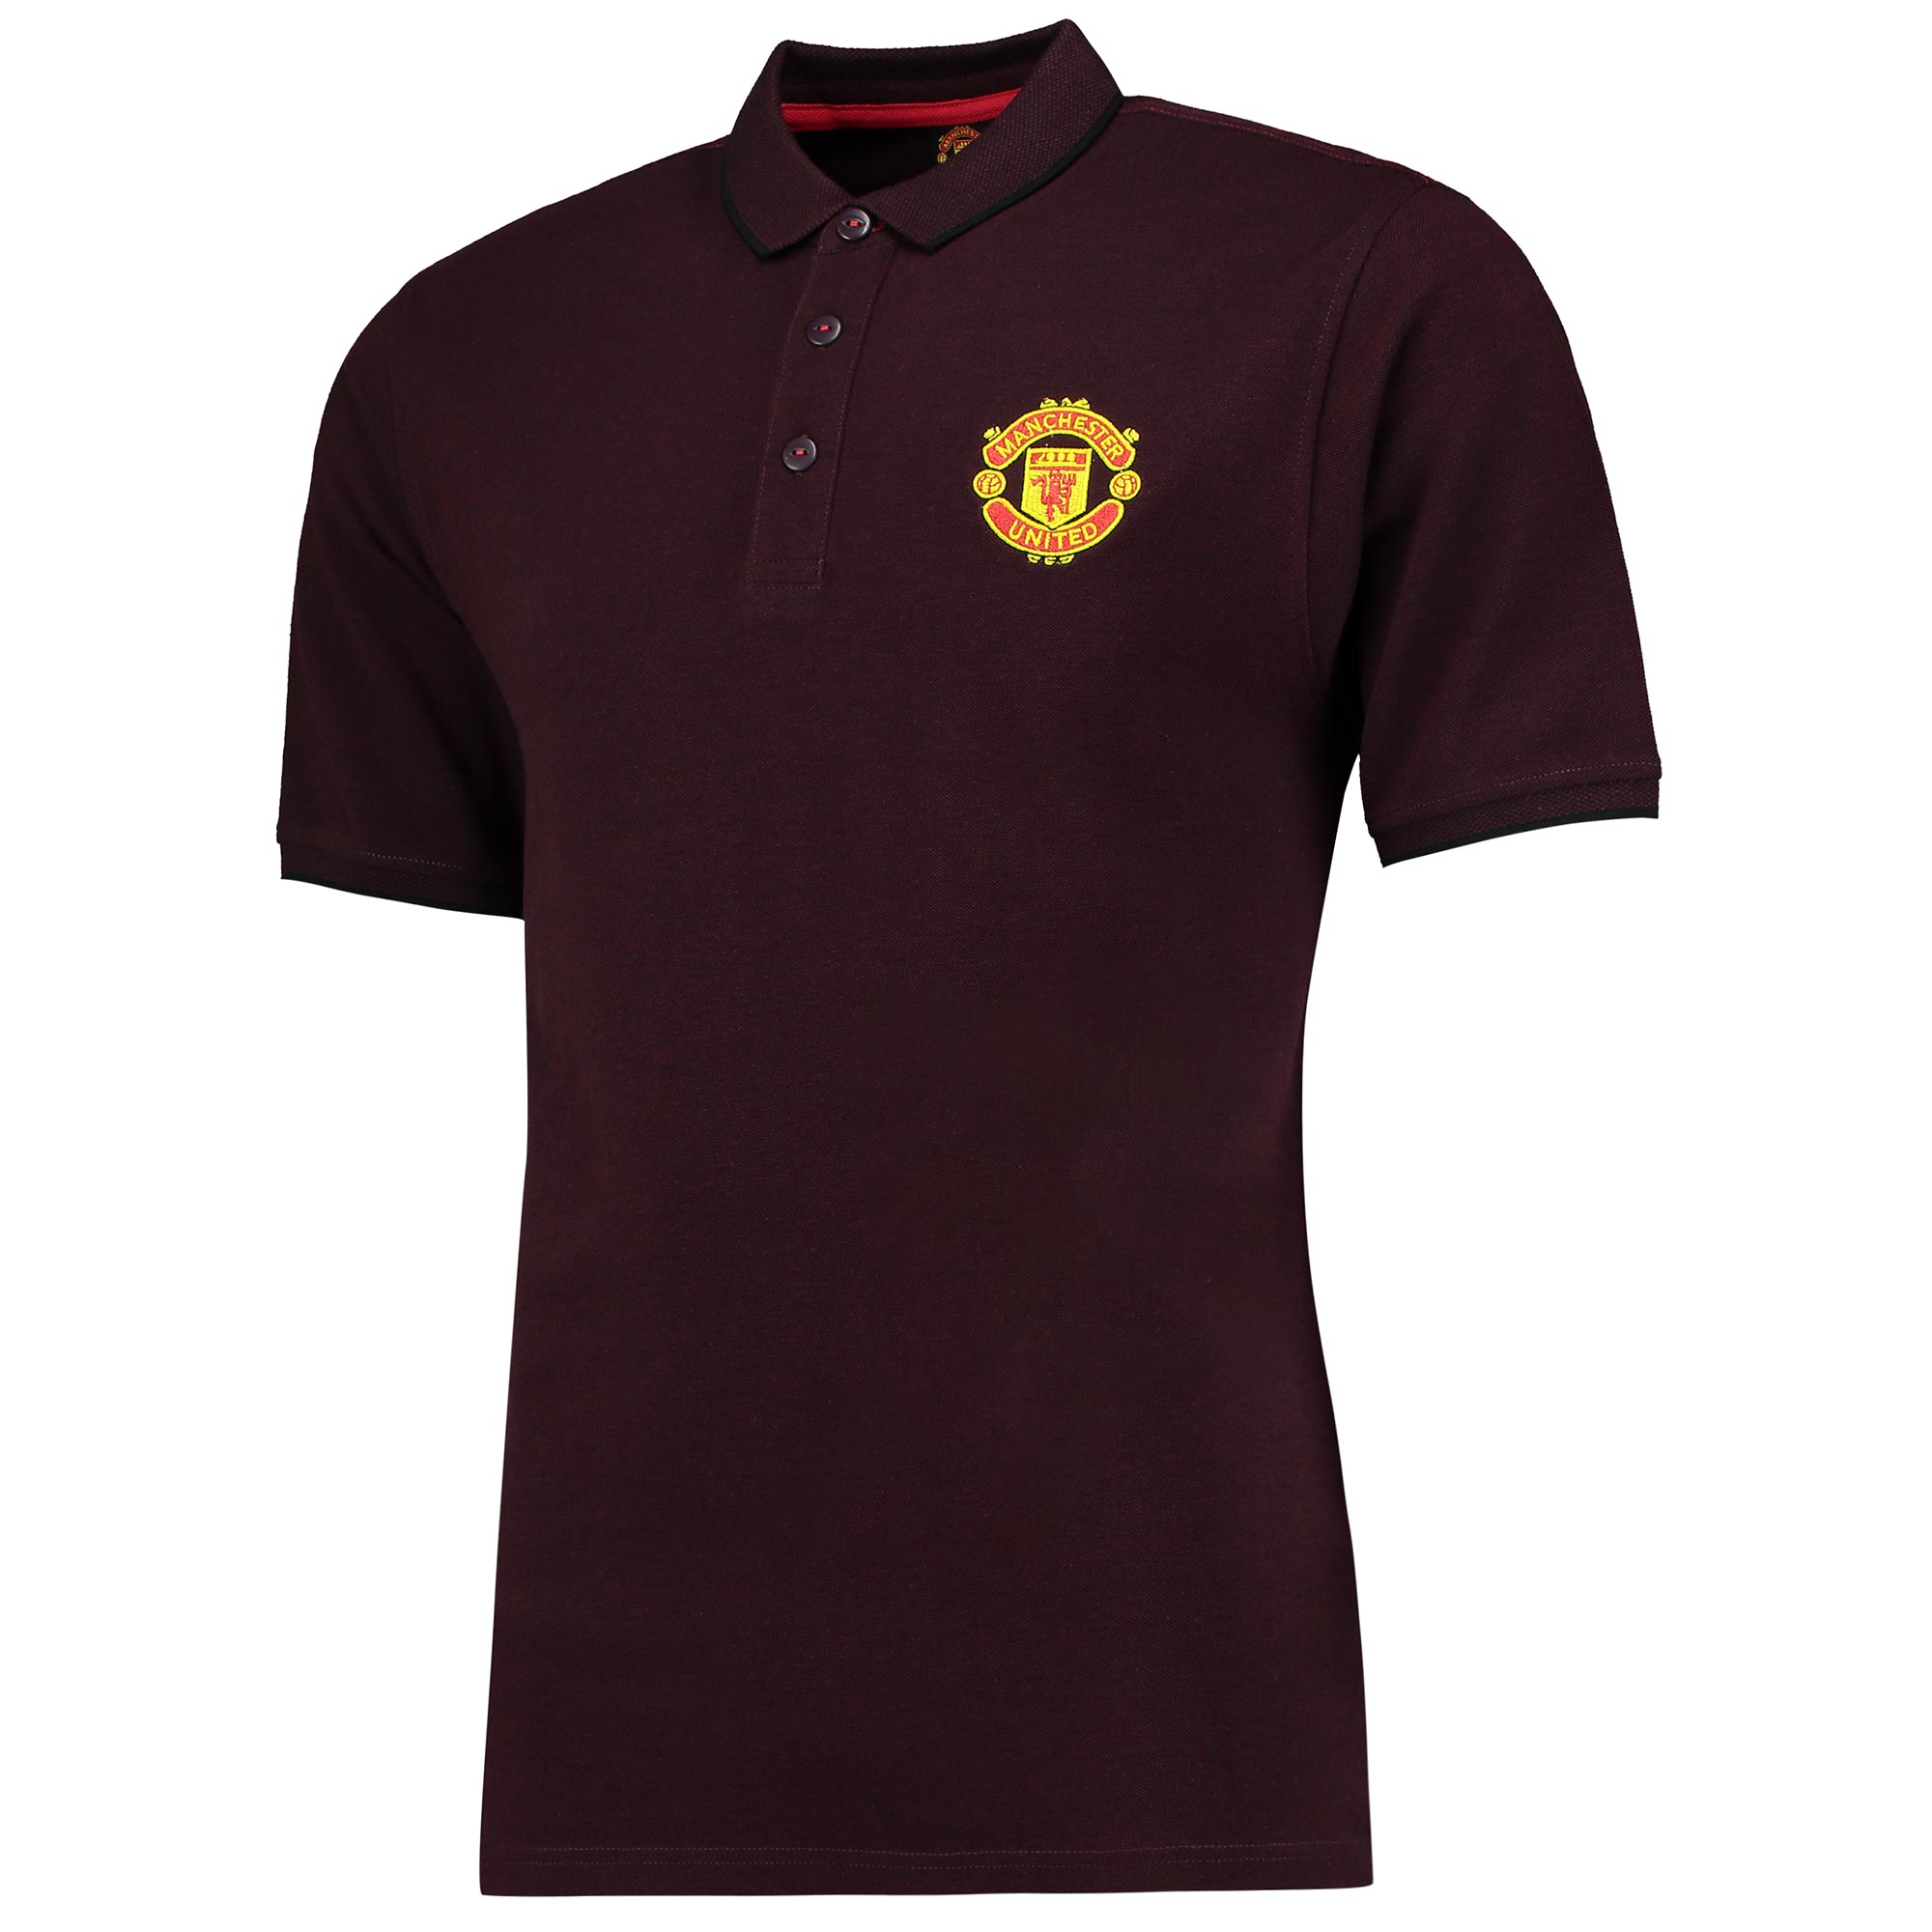 Manchester United Essential Polo Shirt - Burgundy Marl - Mens